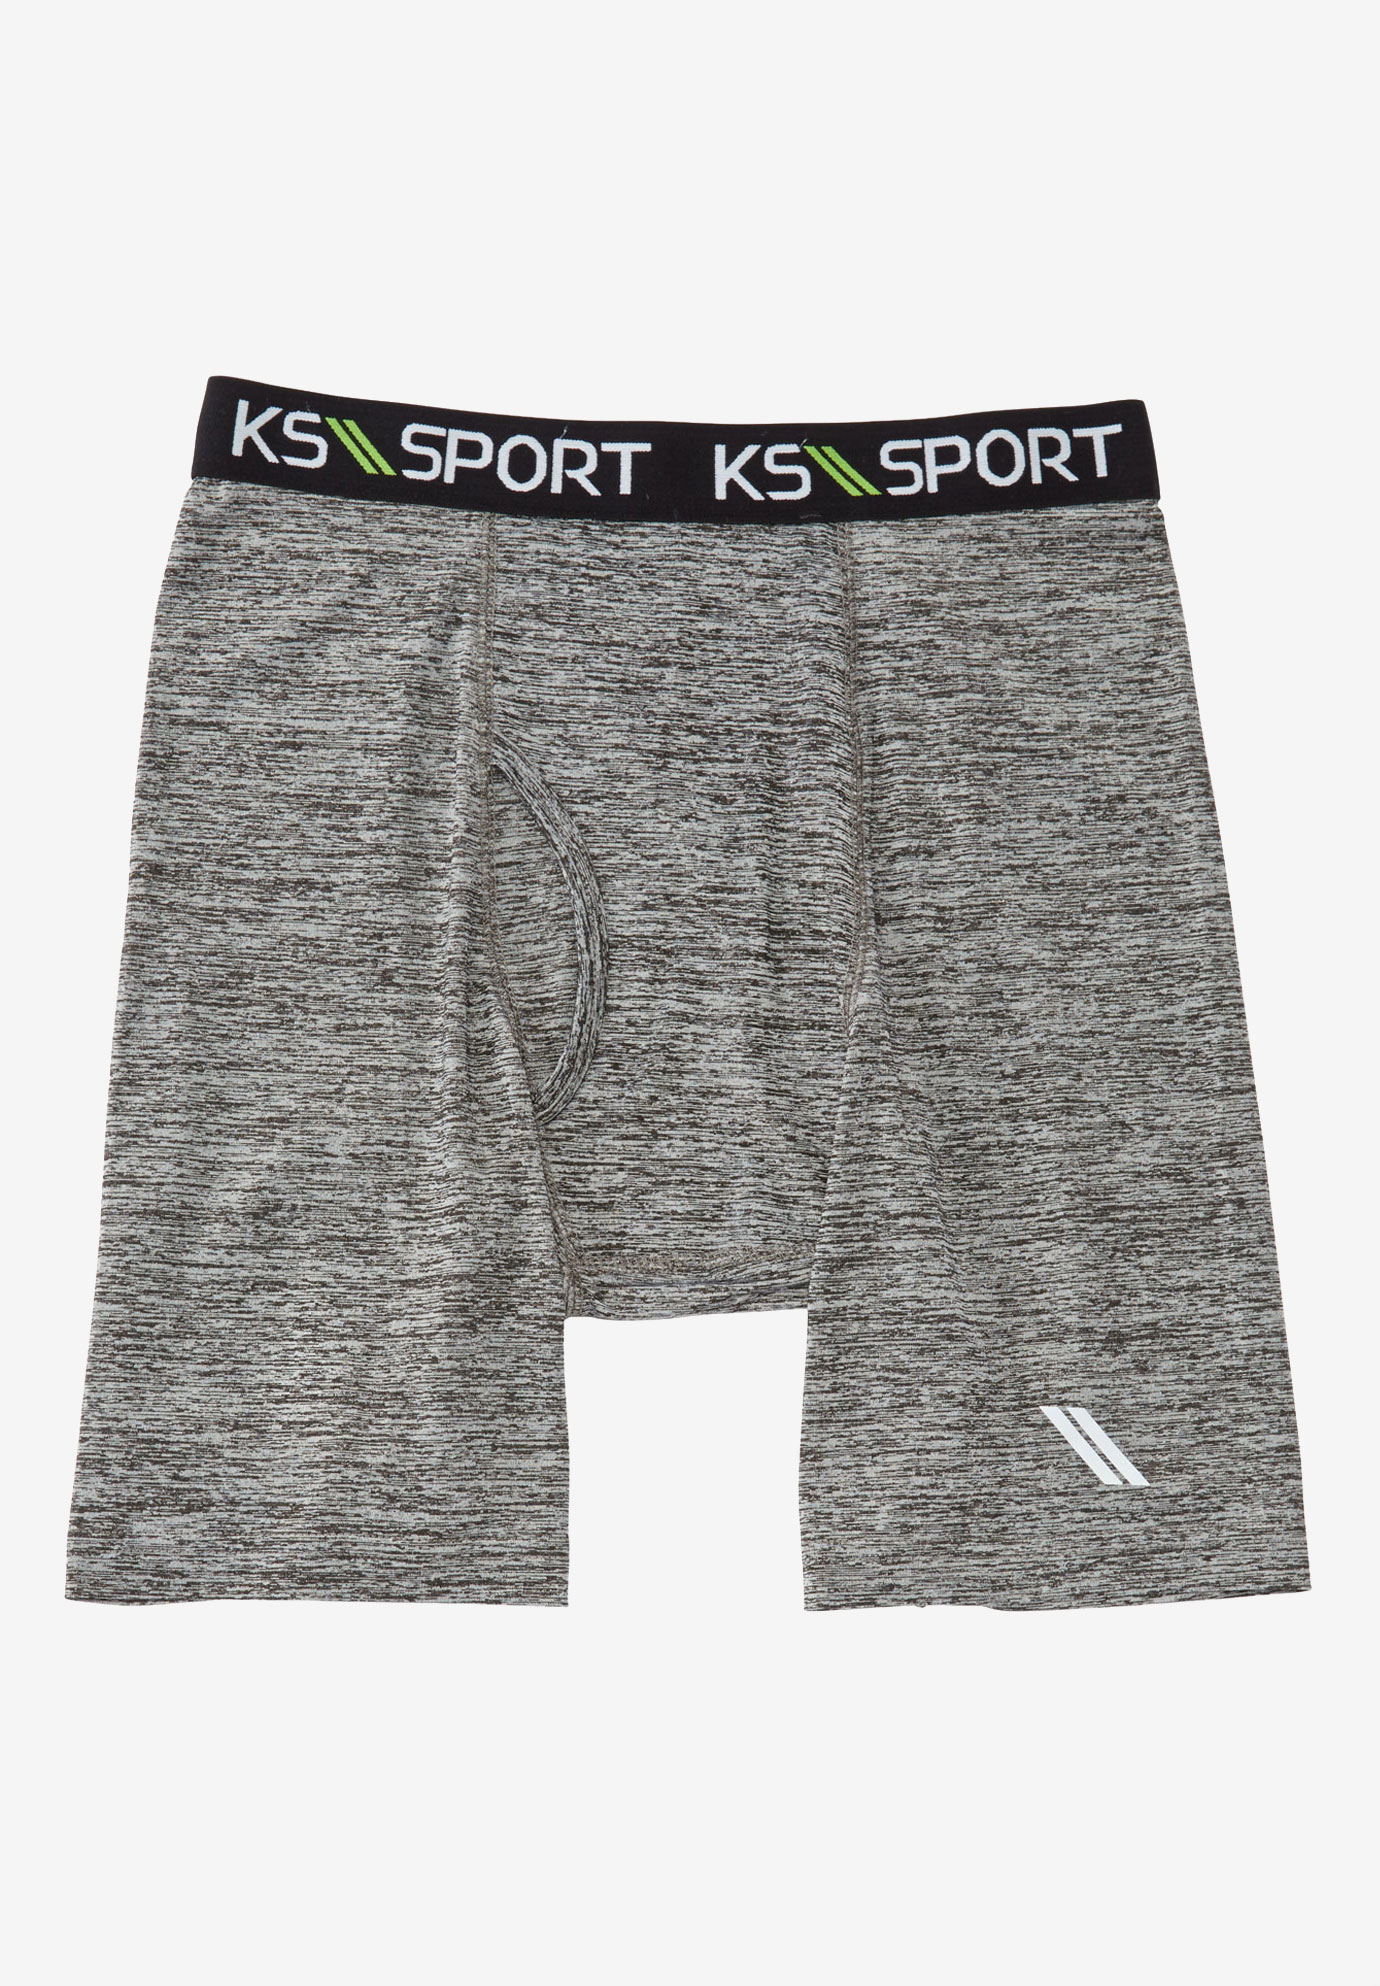 KS Sport™ Performance Cycle Brief,